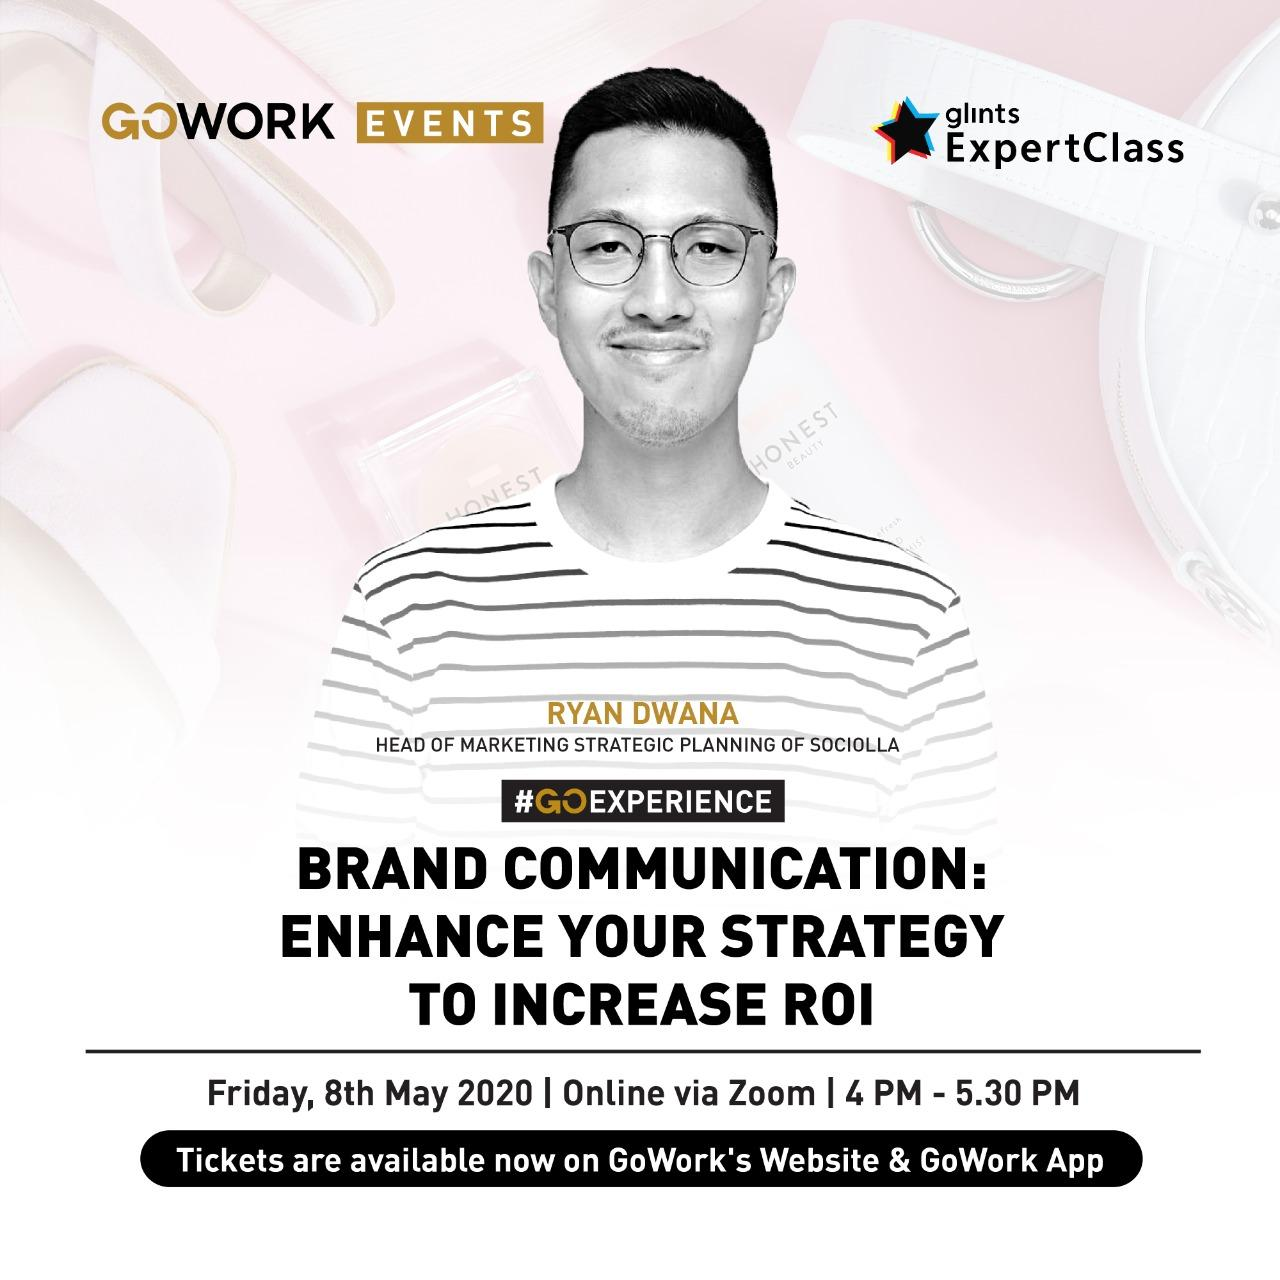 Brand Communication: Enhance Your Strategy to Increase ROI